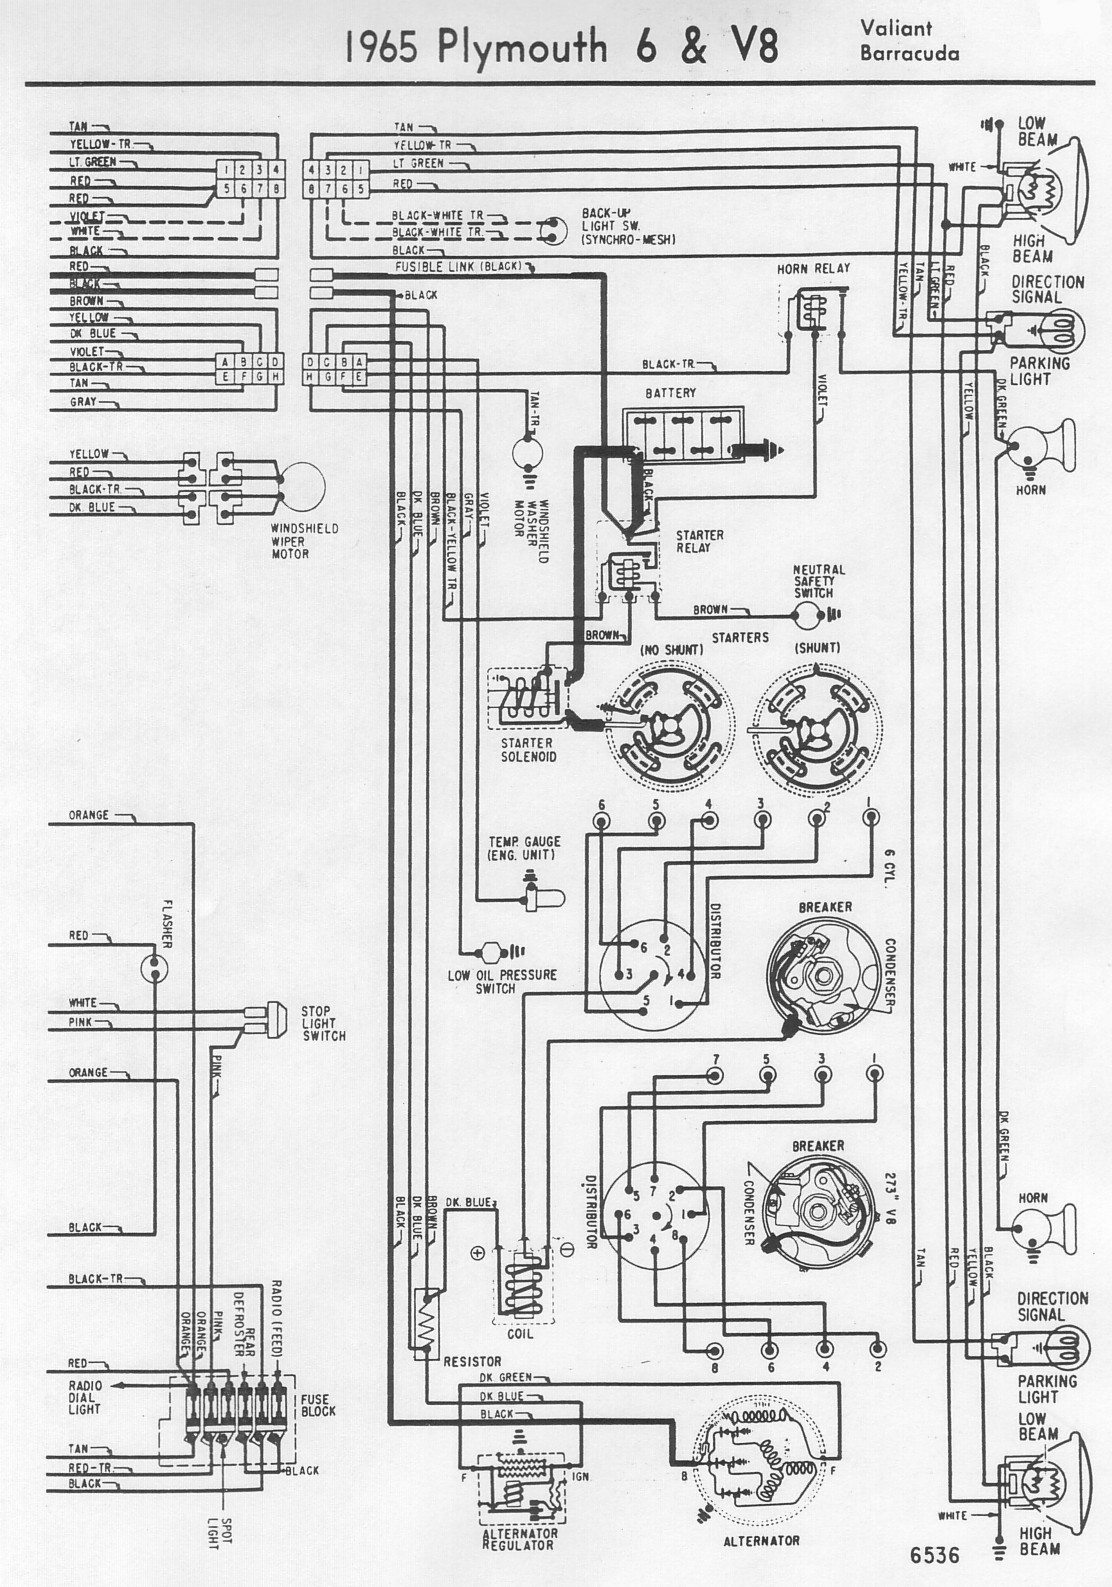 Wiring Diagram For Ignition Switch Of 1964 Barracuda 52 1973 Charger Diagrams 65valiantbarracudab